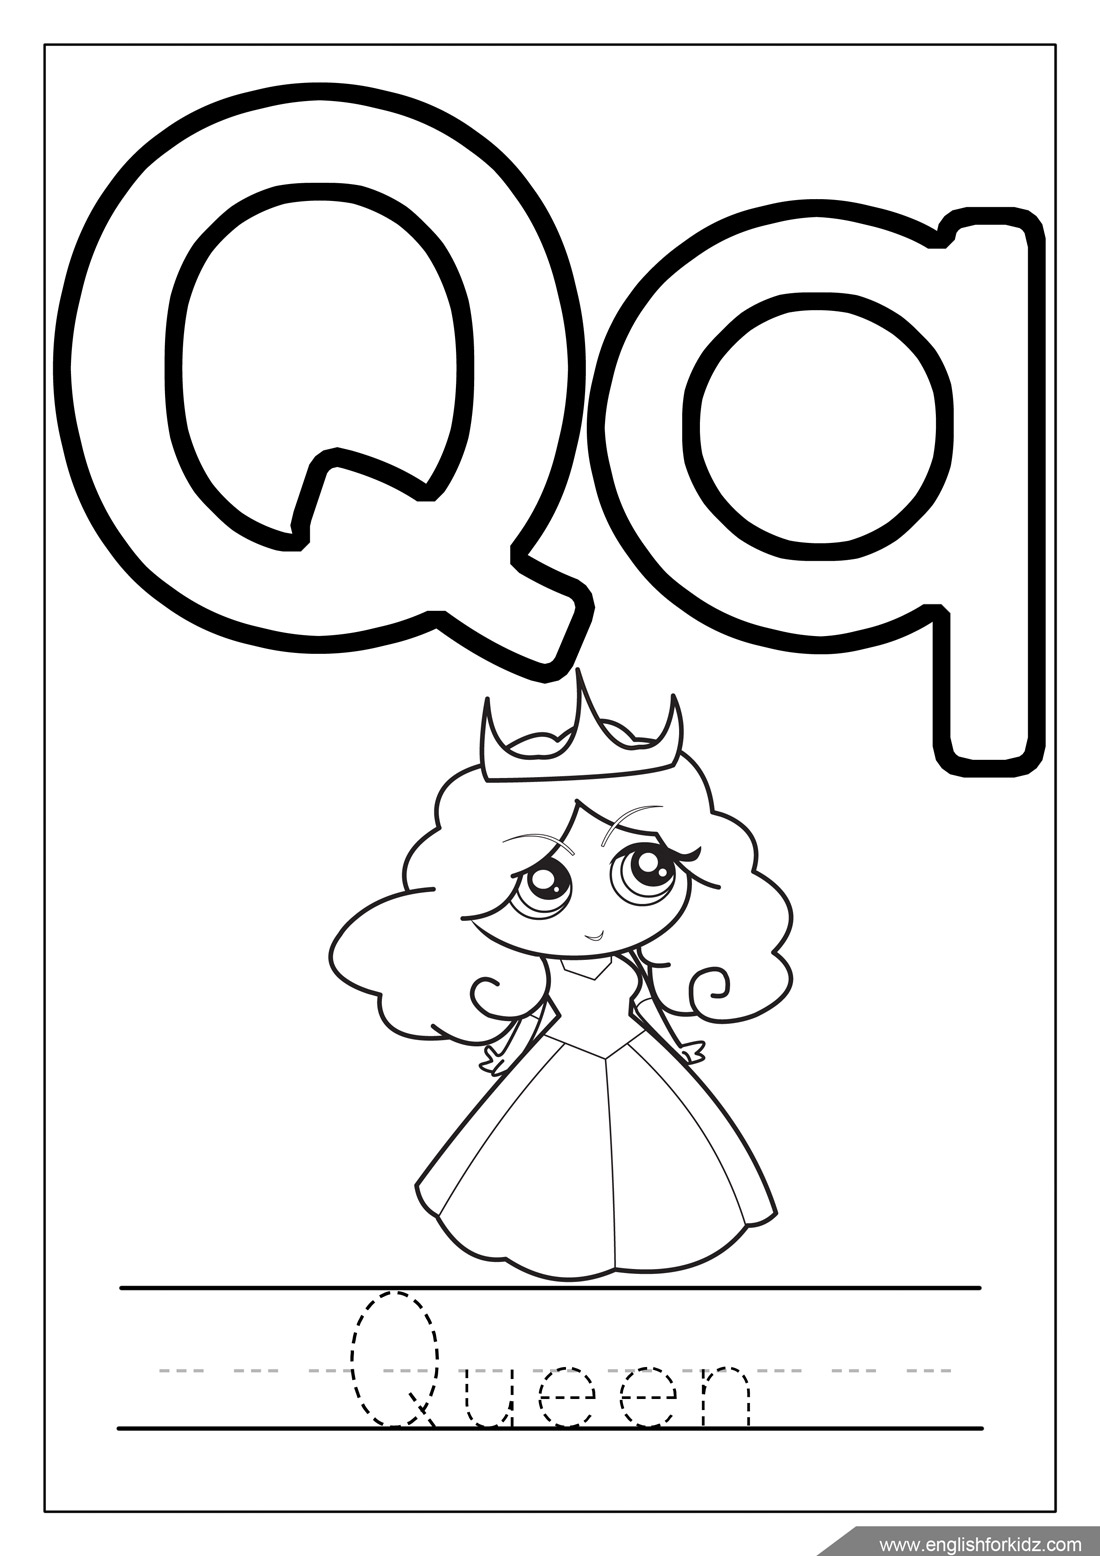 letter q coloring sheet letter q is for quilt coloring page from letter q category letter sheet q coloring